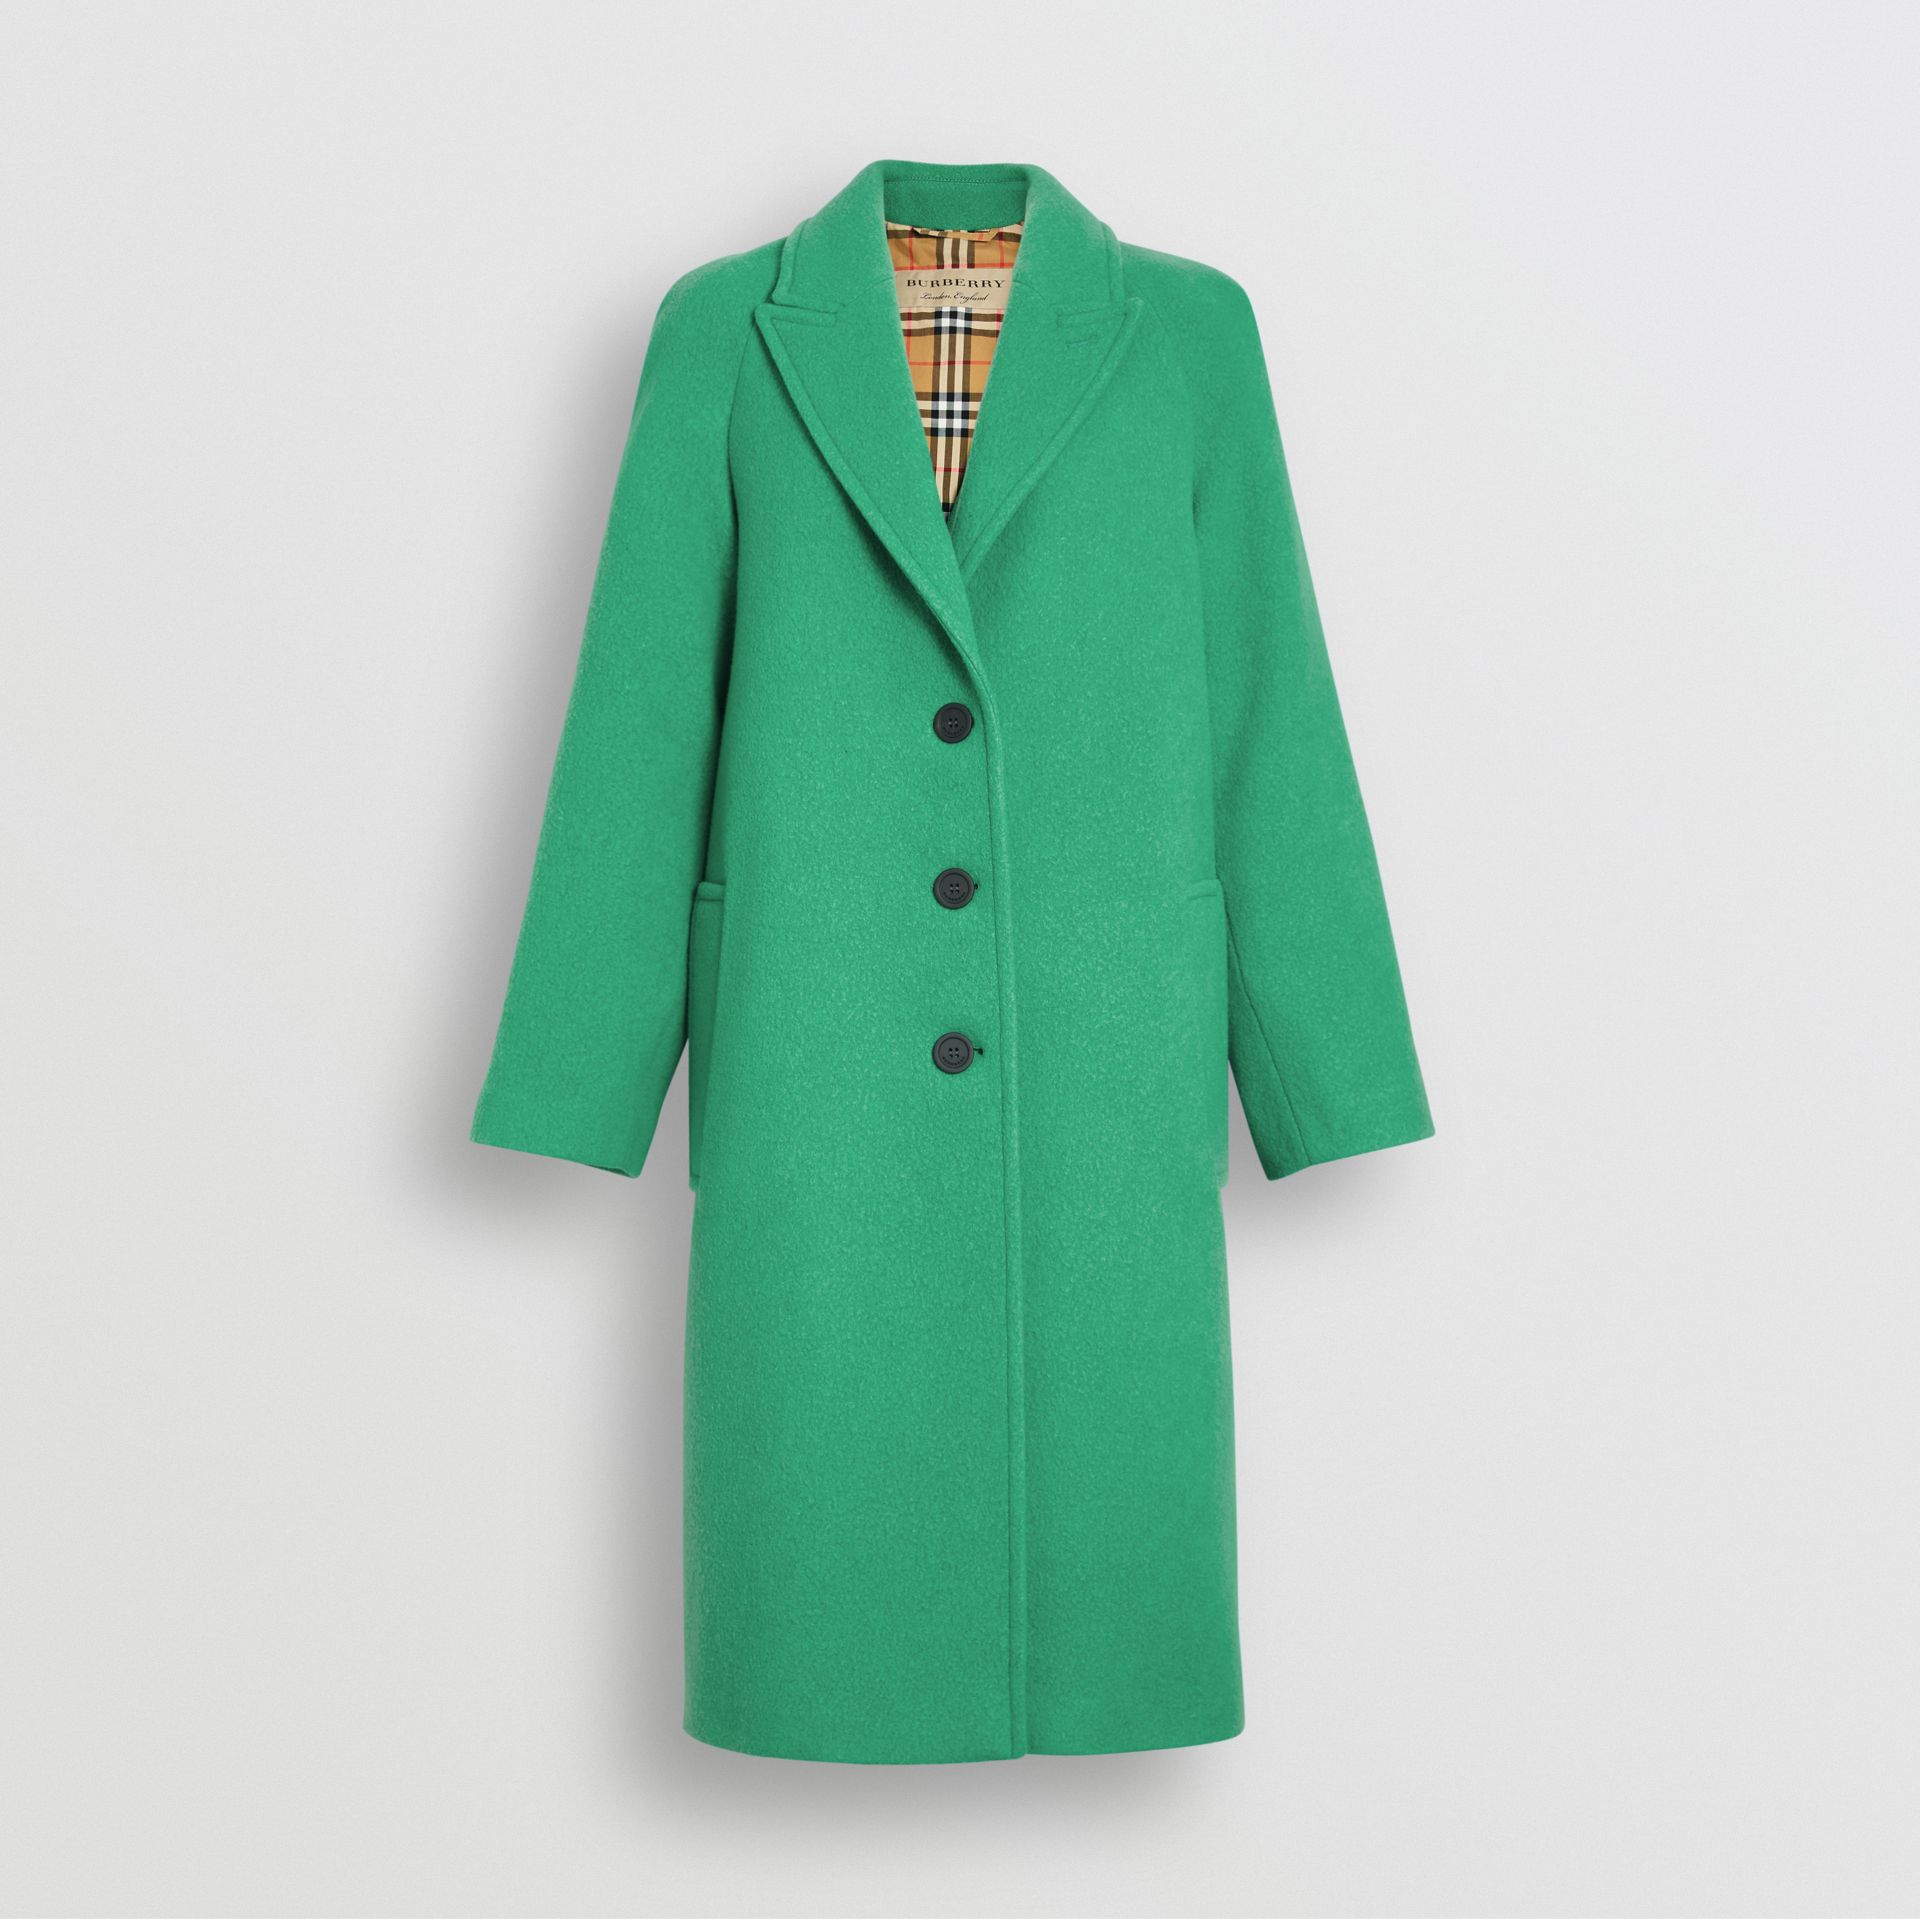 Wool Blend Tailored Coat in Bright Green - Women | Burberry - gallery image 3